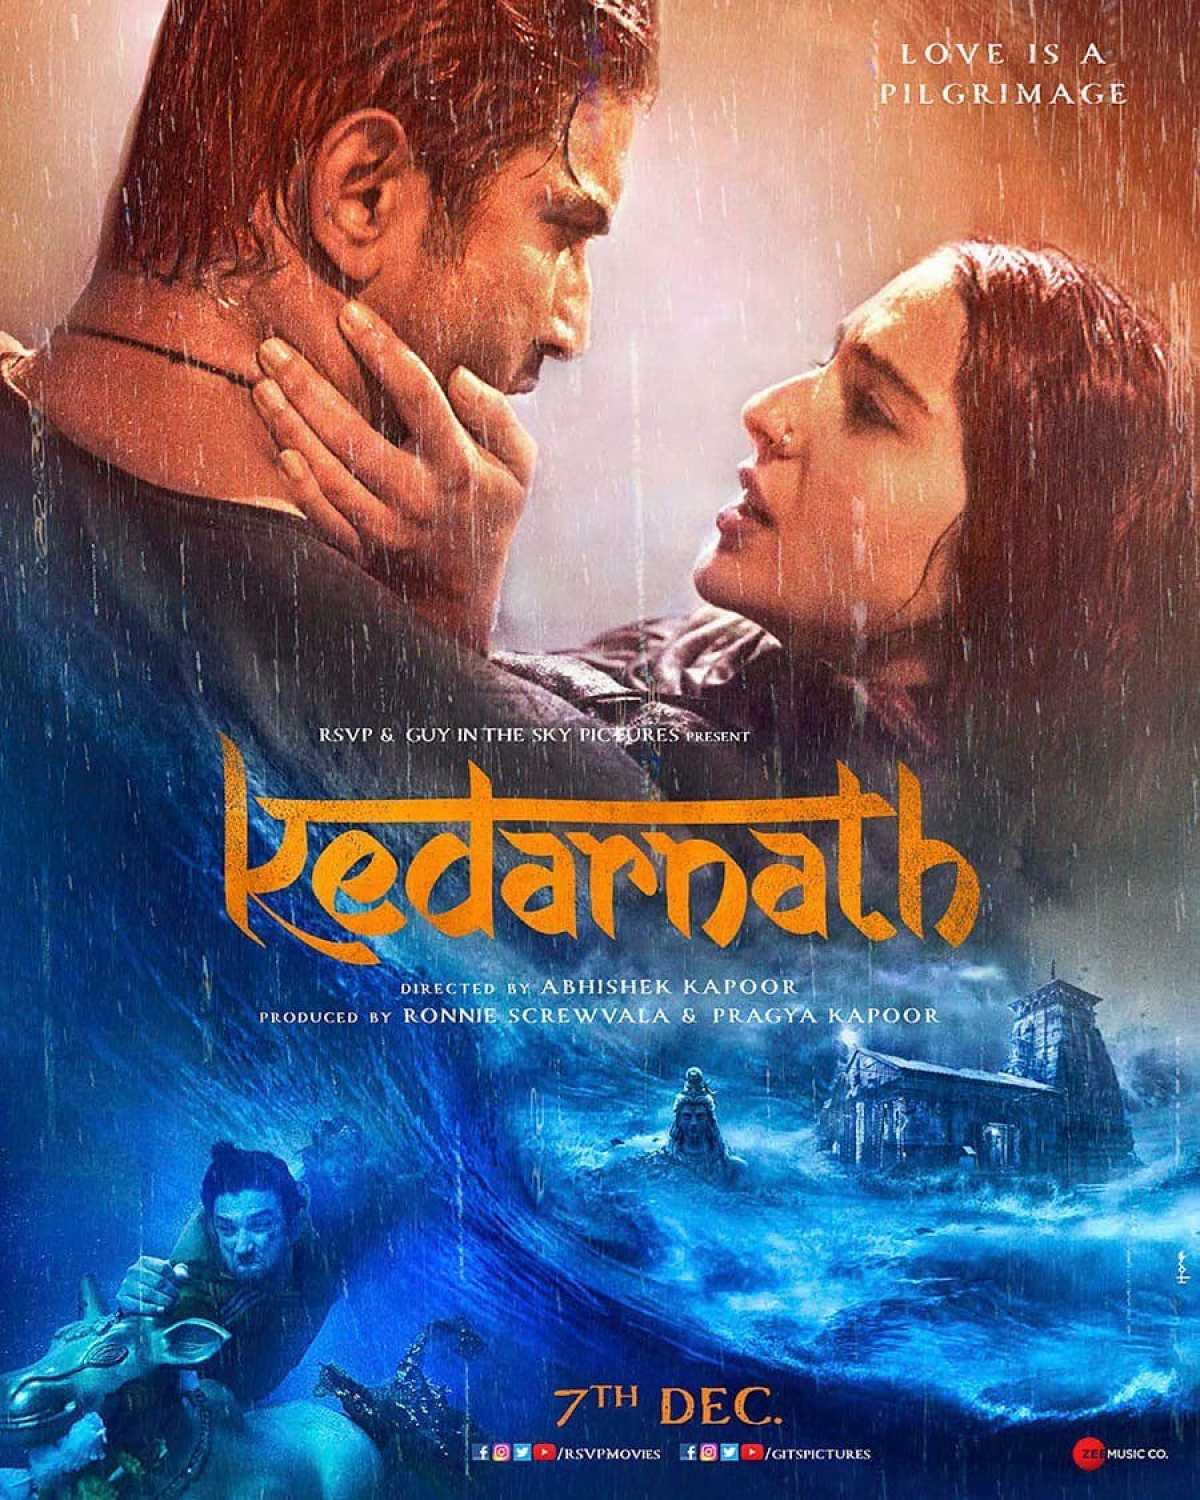 Kedarnath (2018) - Review, Star Cast, News, Photos | Cinestaan